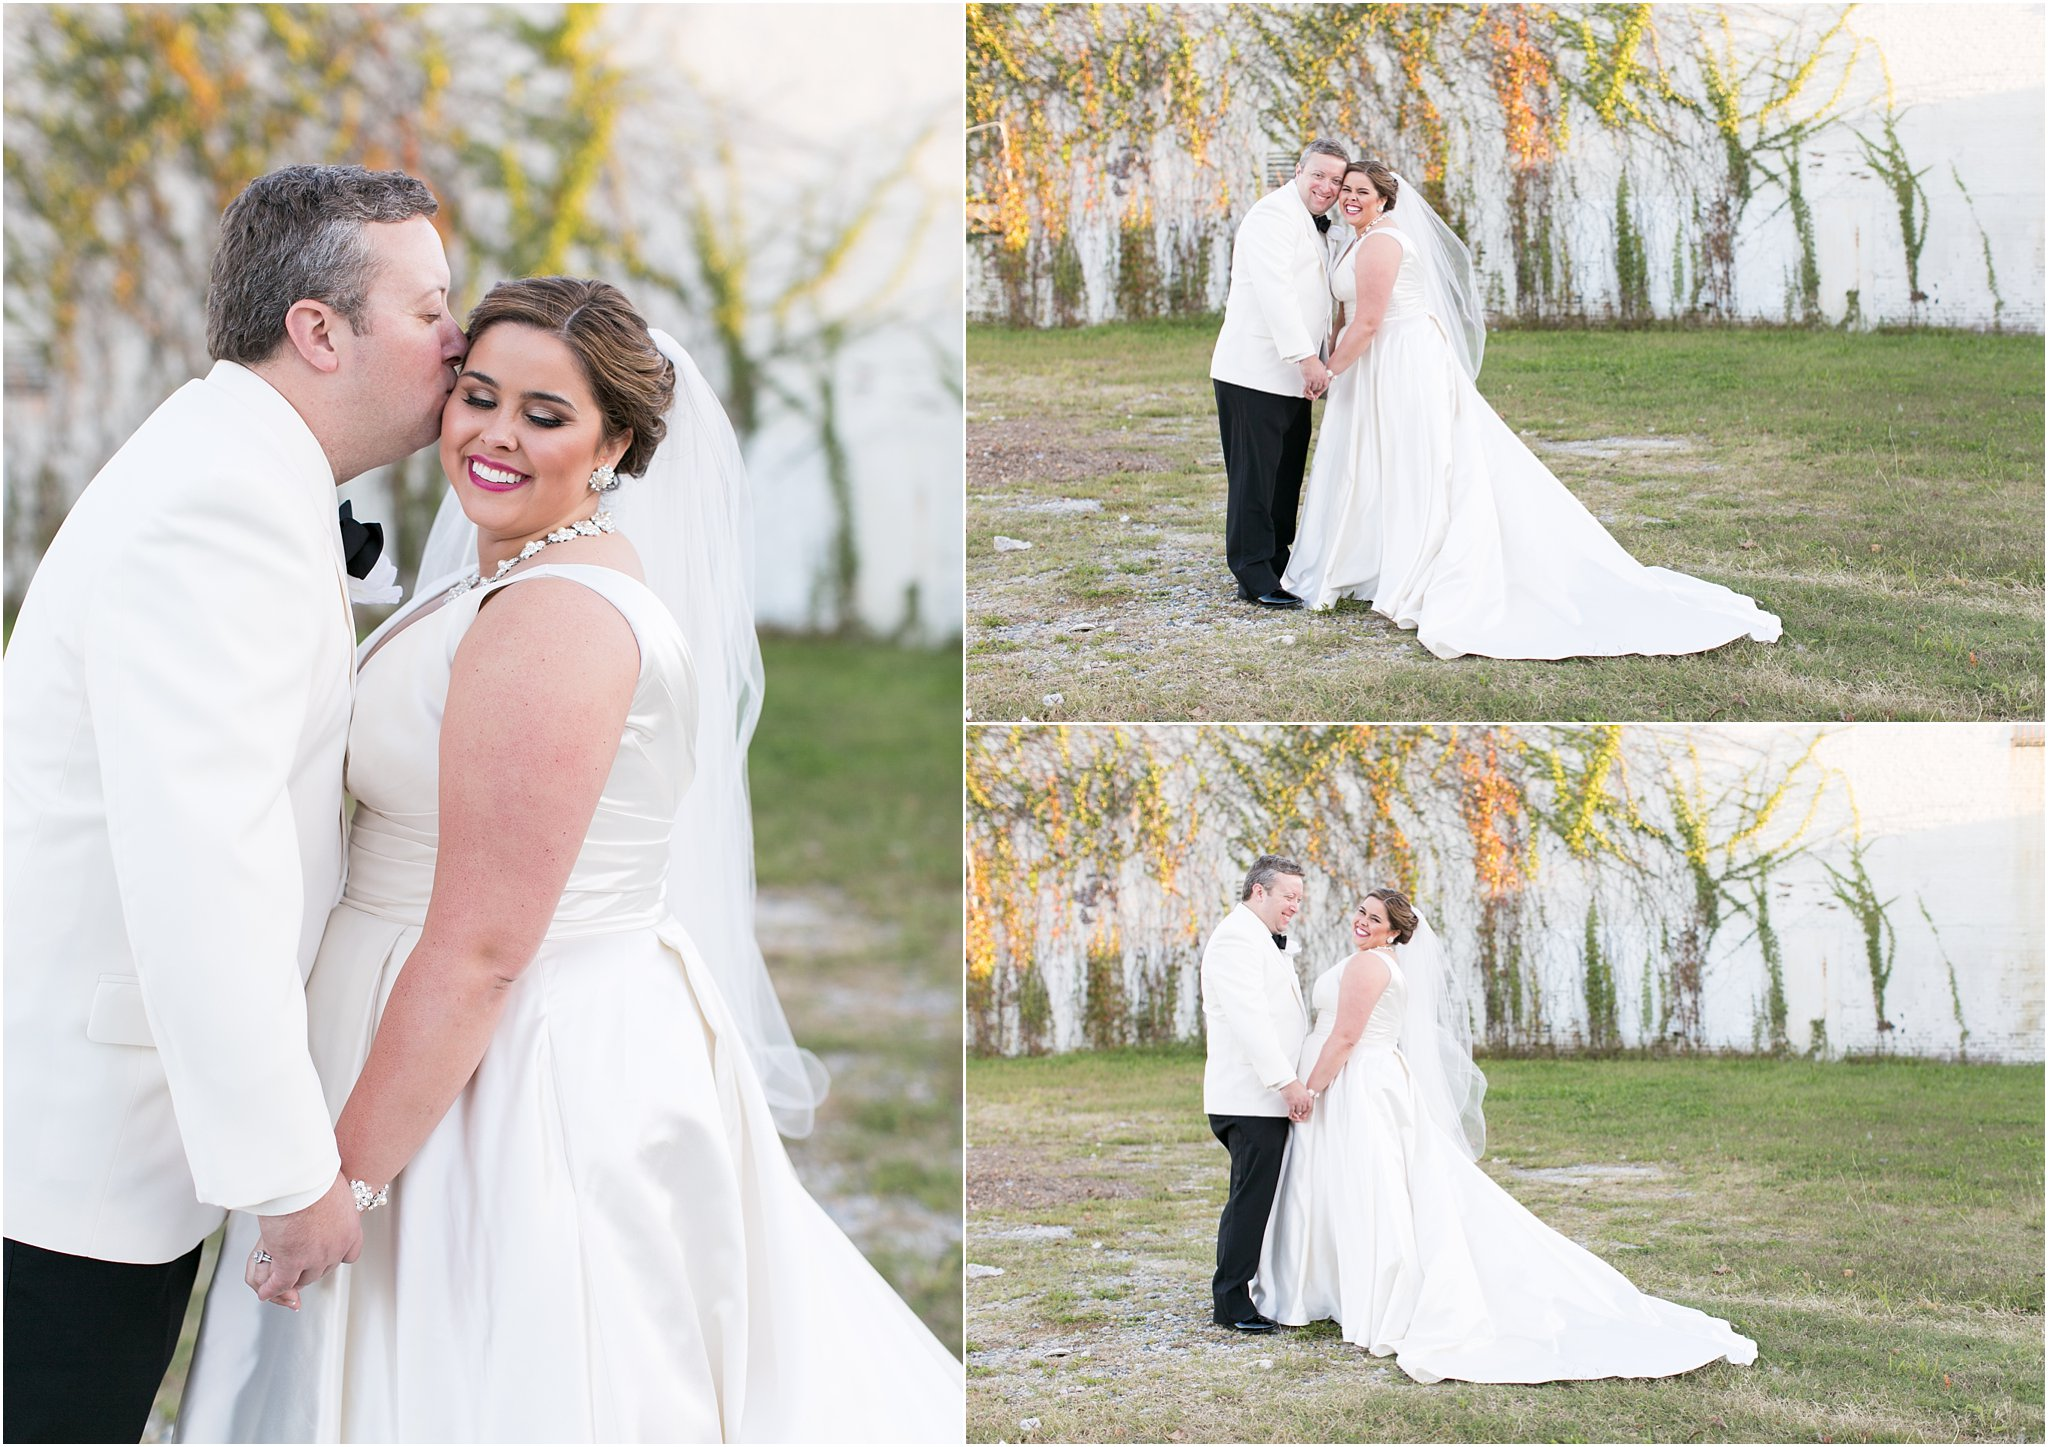 va_jessica_ryan_photography_virginia_wedding_norfolk_harrison_opera_house_norfolk_arts_district_portraits_3817